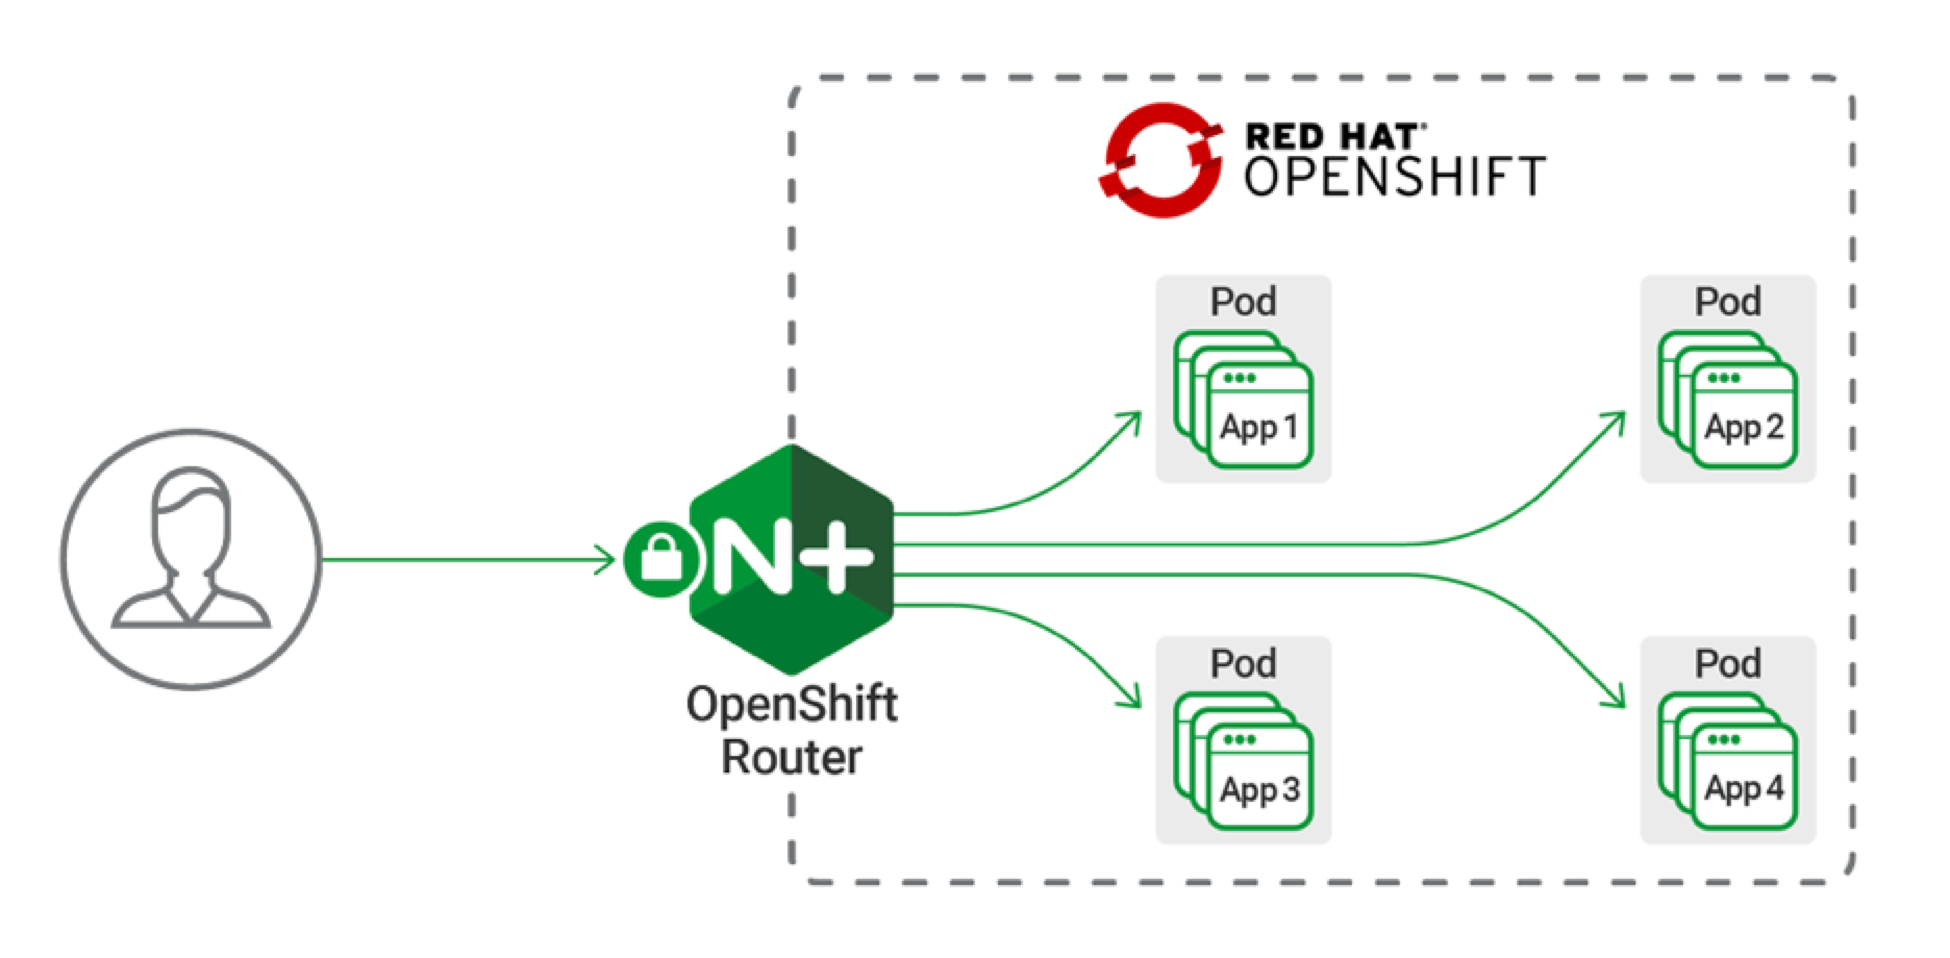 diagram showing the NGINX Plus Router in an OpenShift deployment